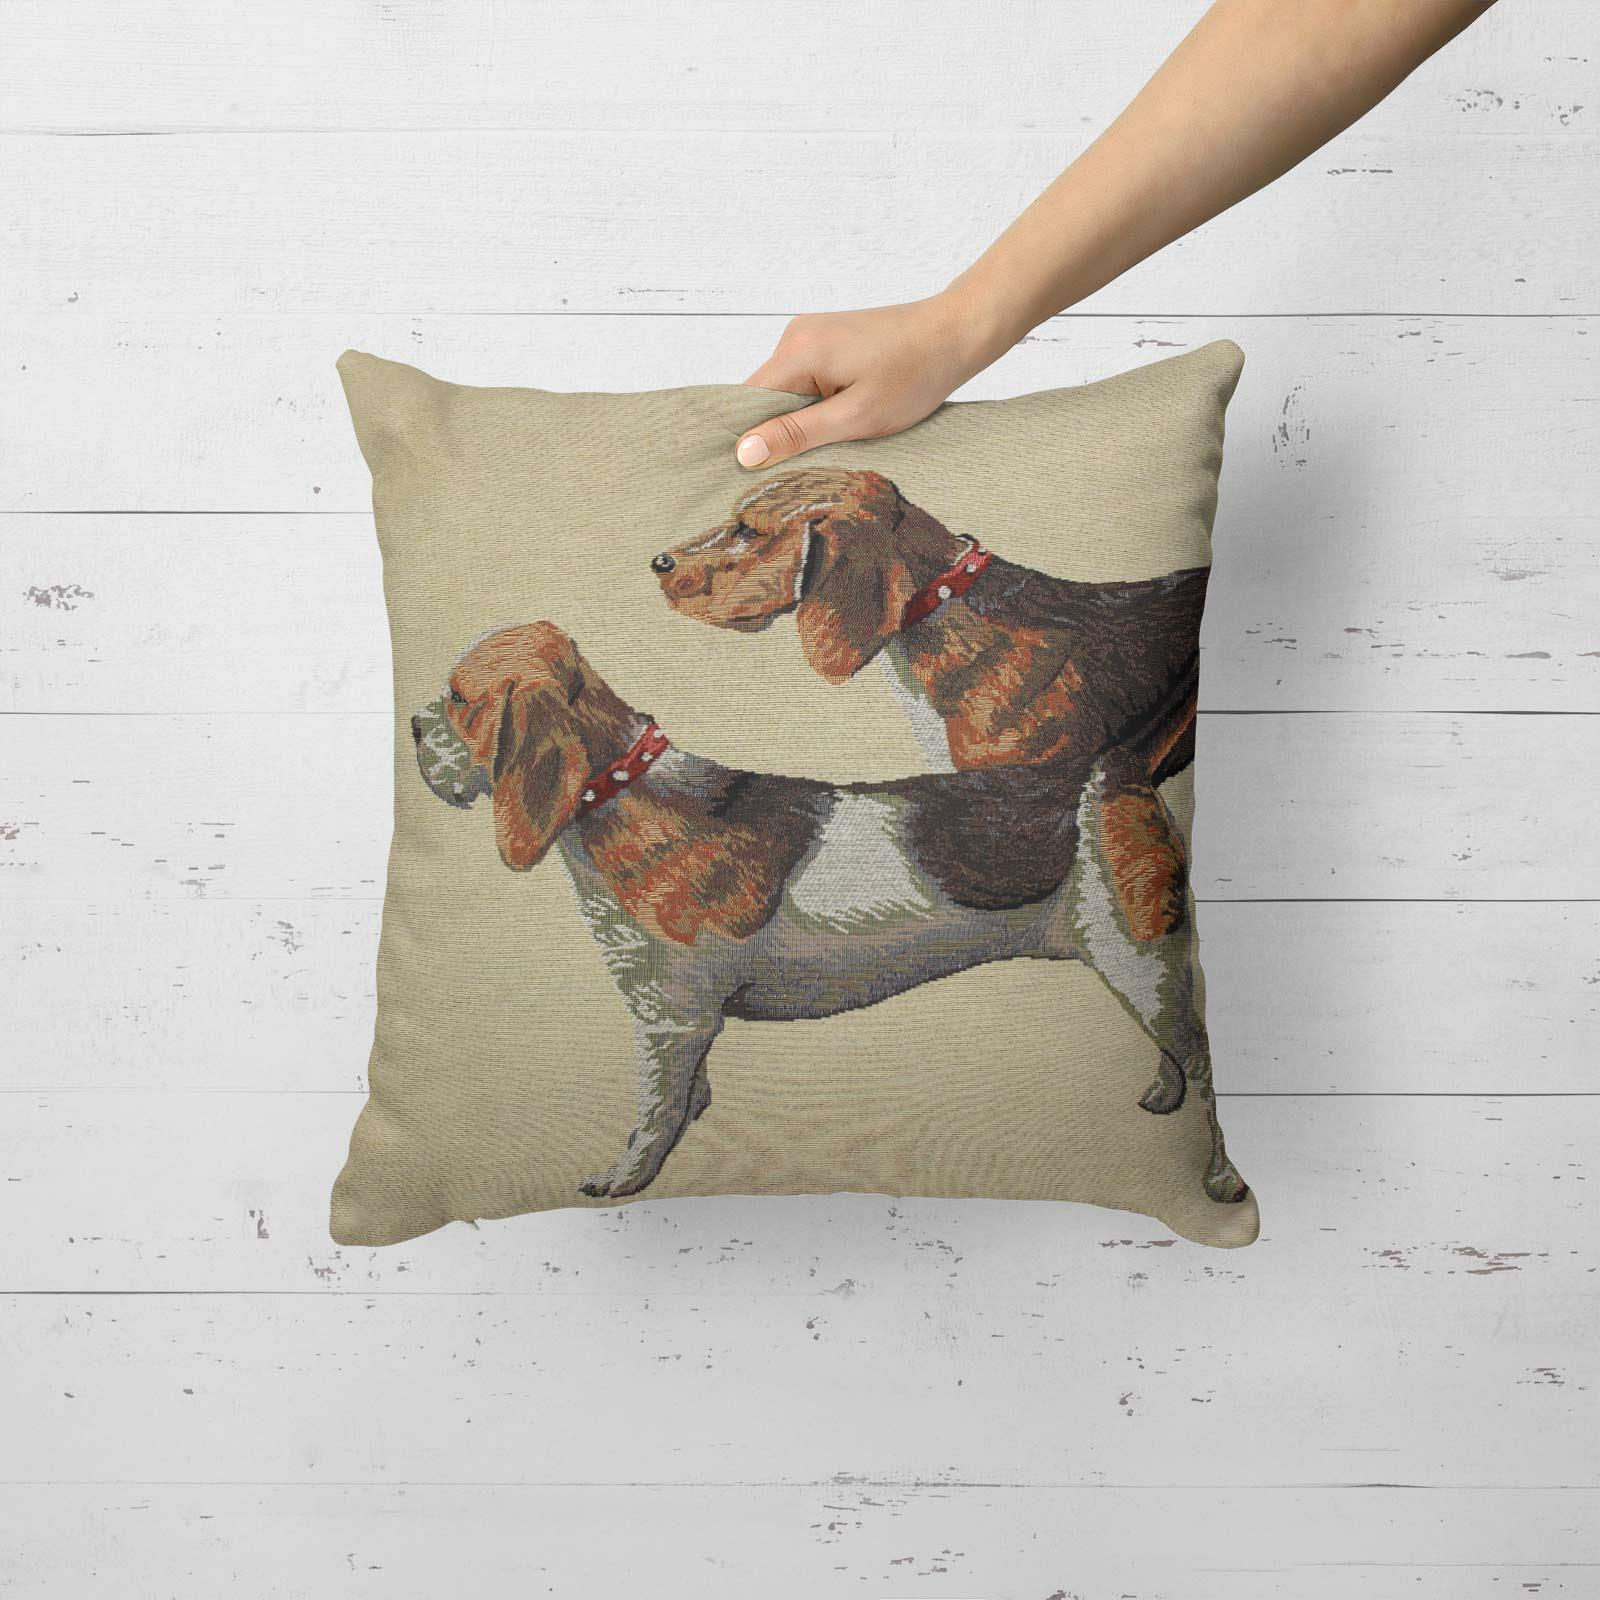 Tapestry-Cushion-Covers-Vintage-Pillow-Cover-Collection-18-034-45cm-Filled-Cushions thumbnail 80